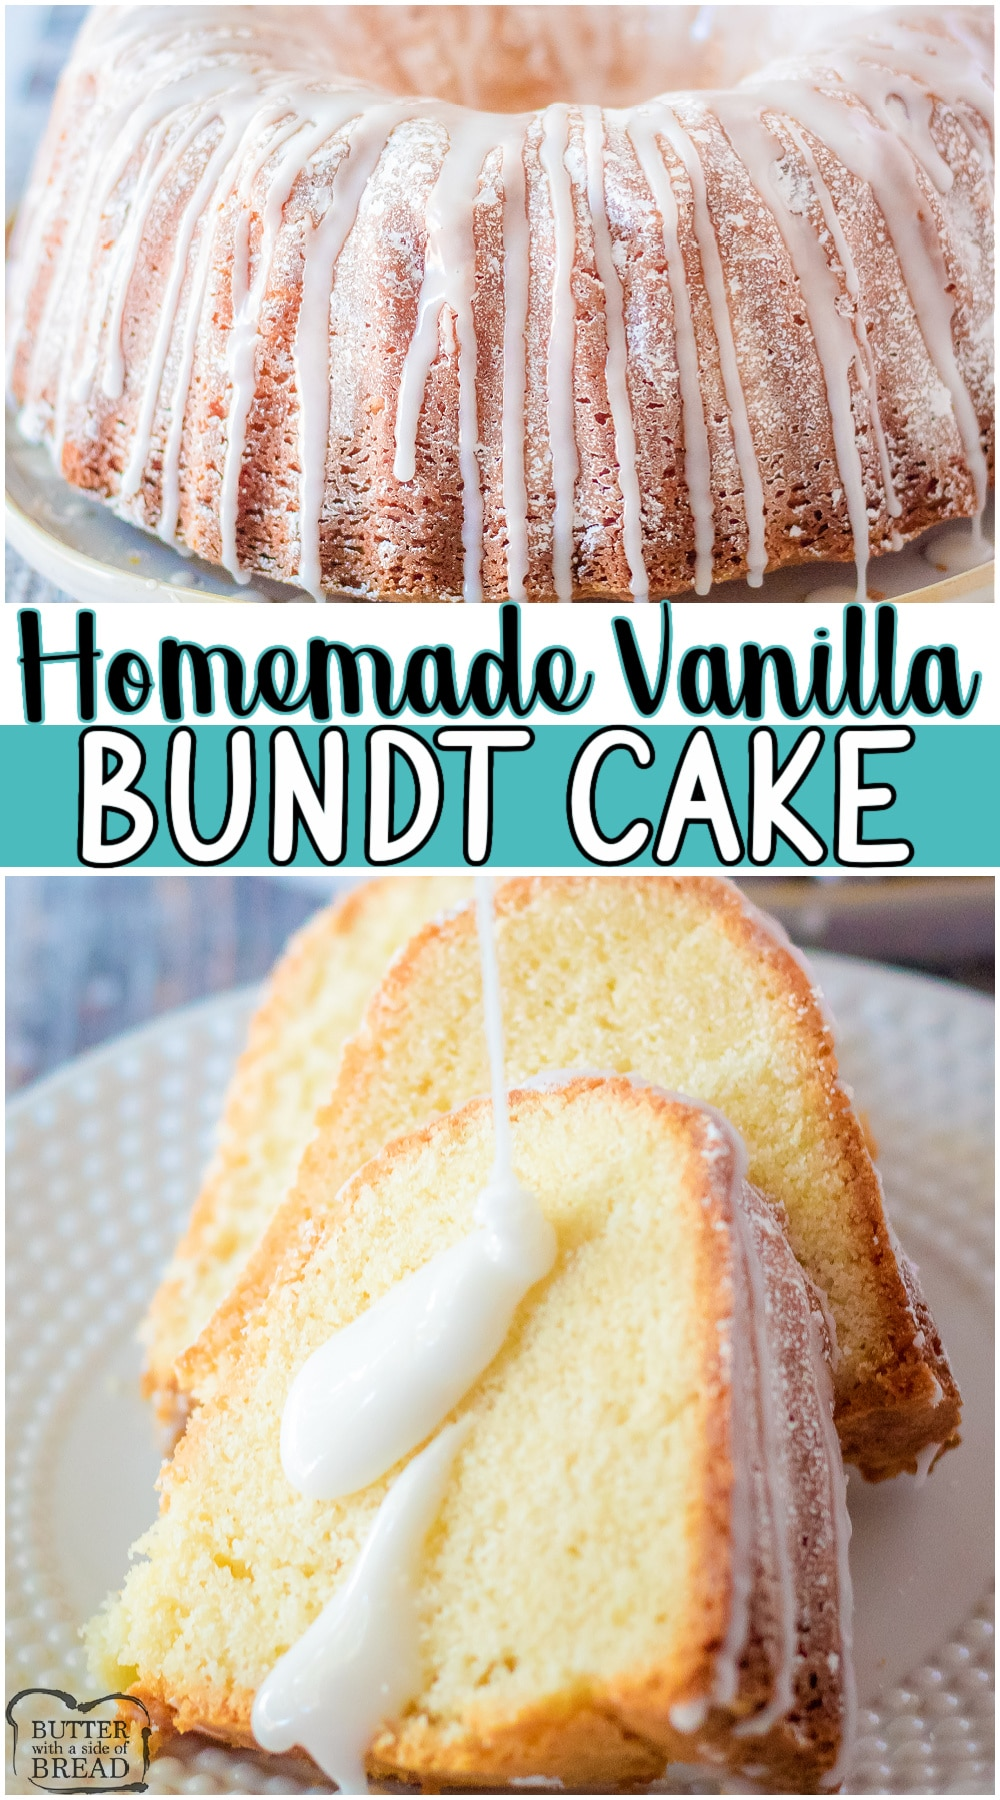 Lovely Vanilla Bundt Cake made with classic ingredients with fantastic vanilla flavor! Simple, classic bundt cake recipe that allows the vanilla flavors to shine beautifully! #cake #vanilla #bundt #baking #dessert #easyrecipe from BUTTER WITH A SIDE OF BREAD